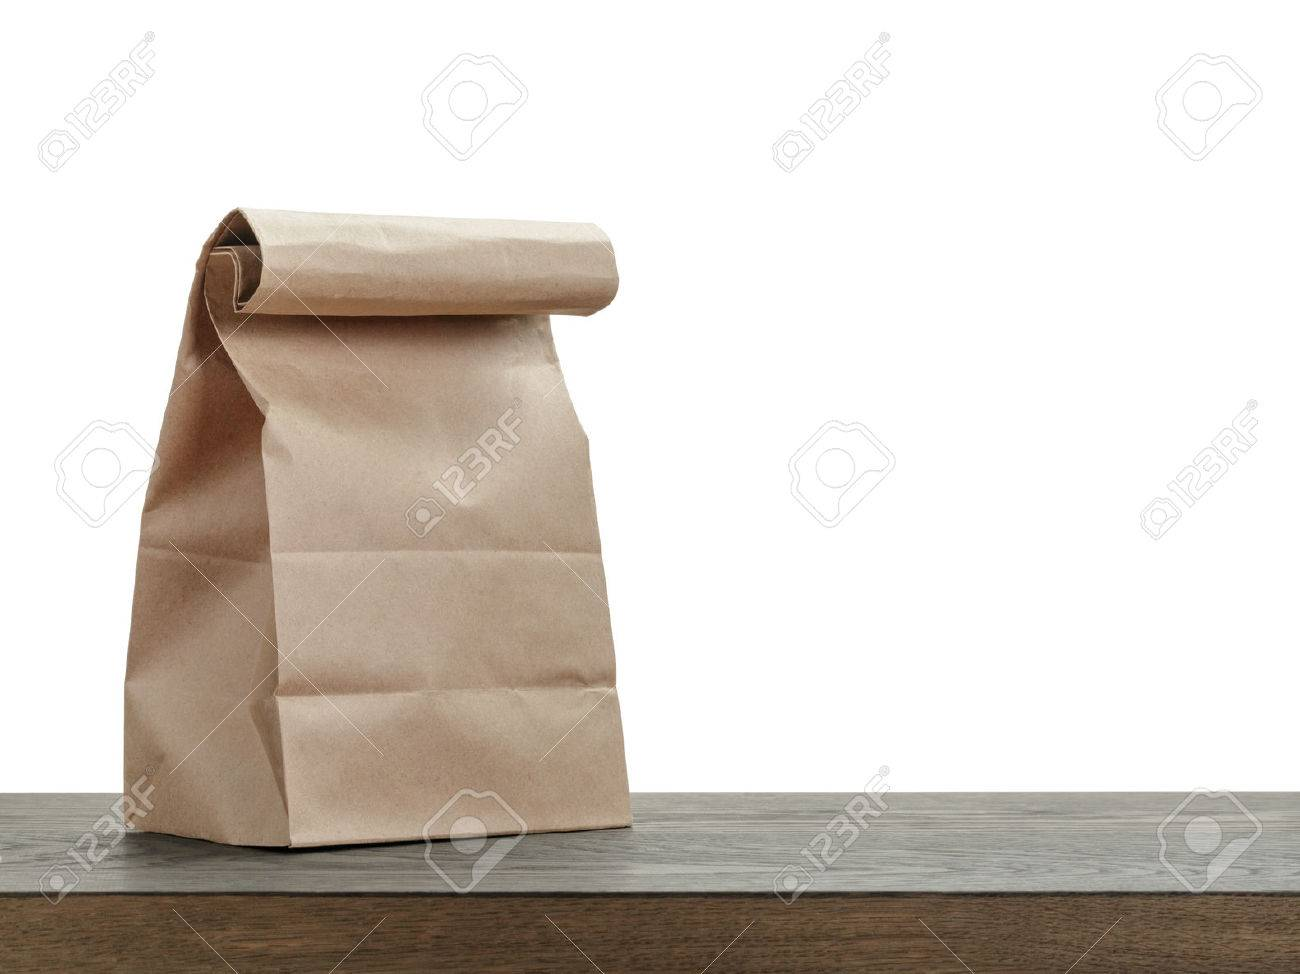 simple brown paper bag for lunch or food on wooden table - 39104958